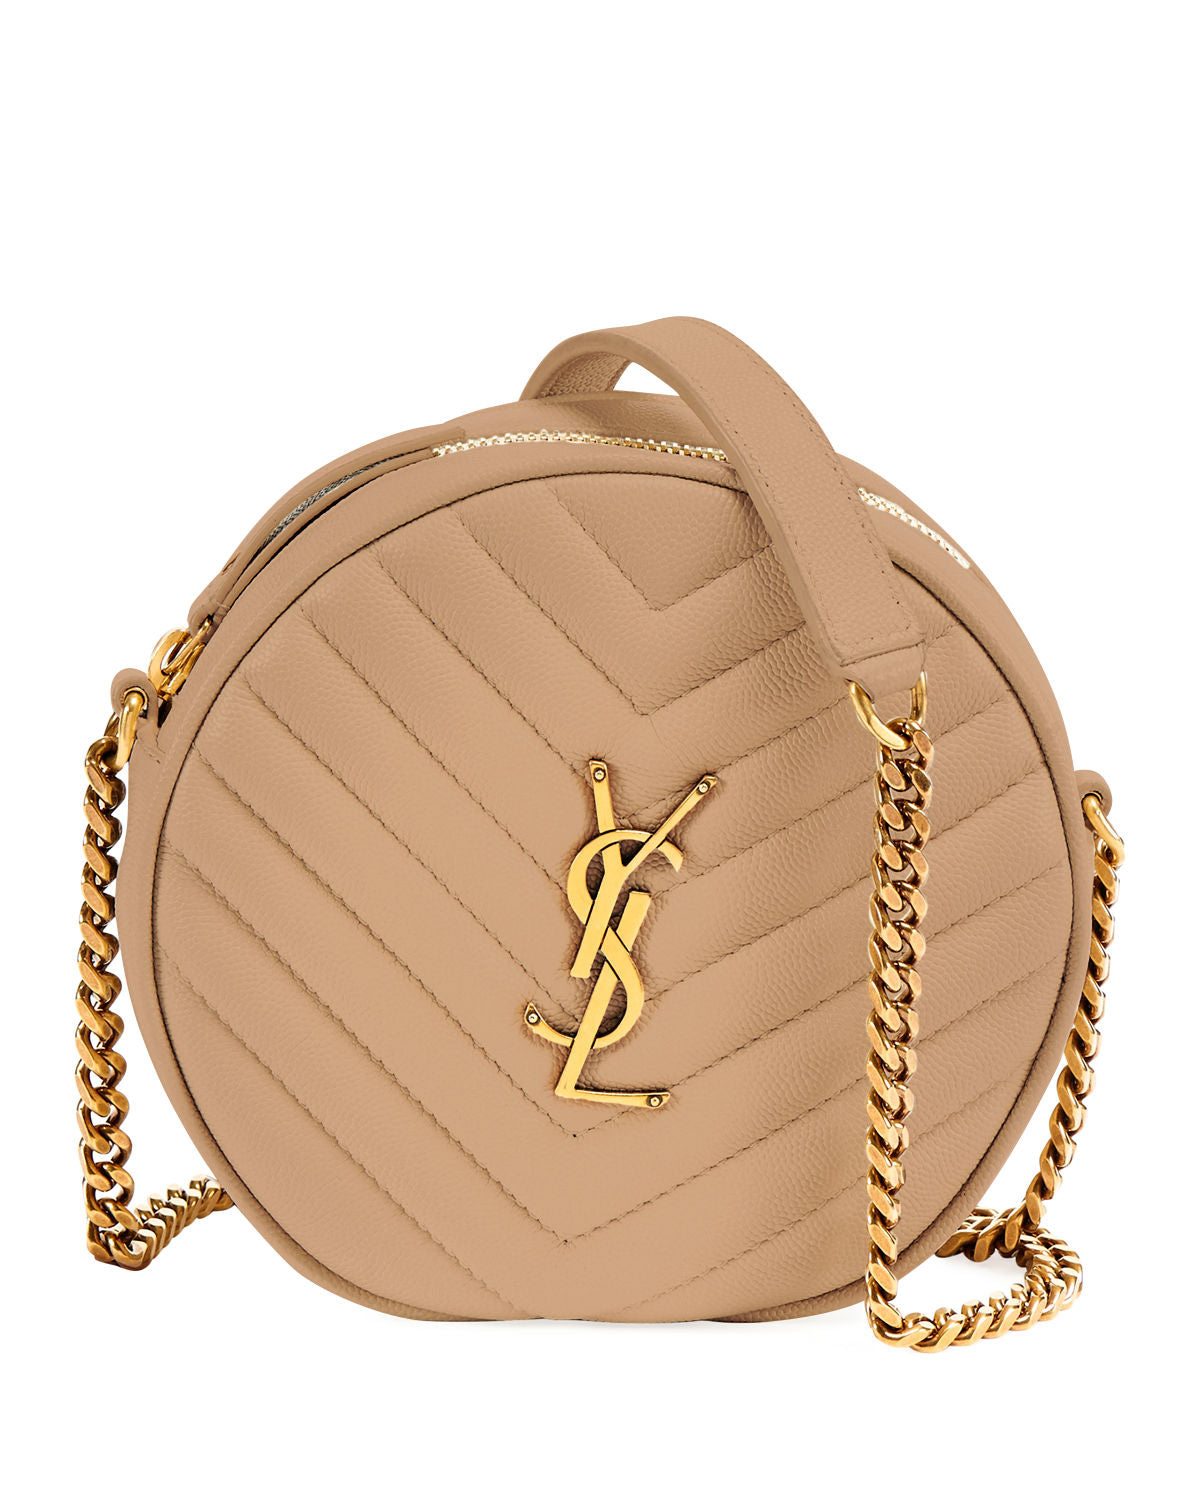 Saint Laurent Round Crossbody Bag